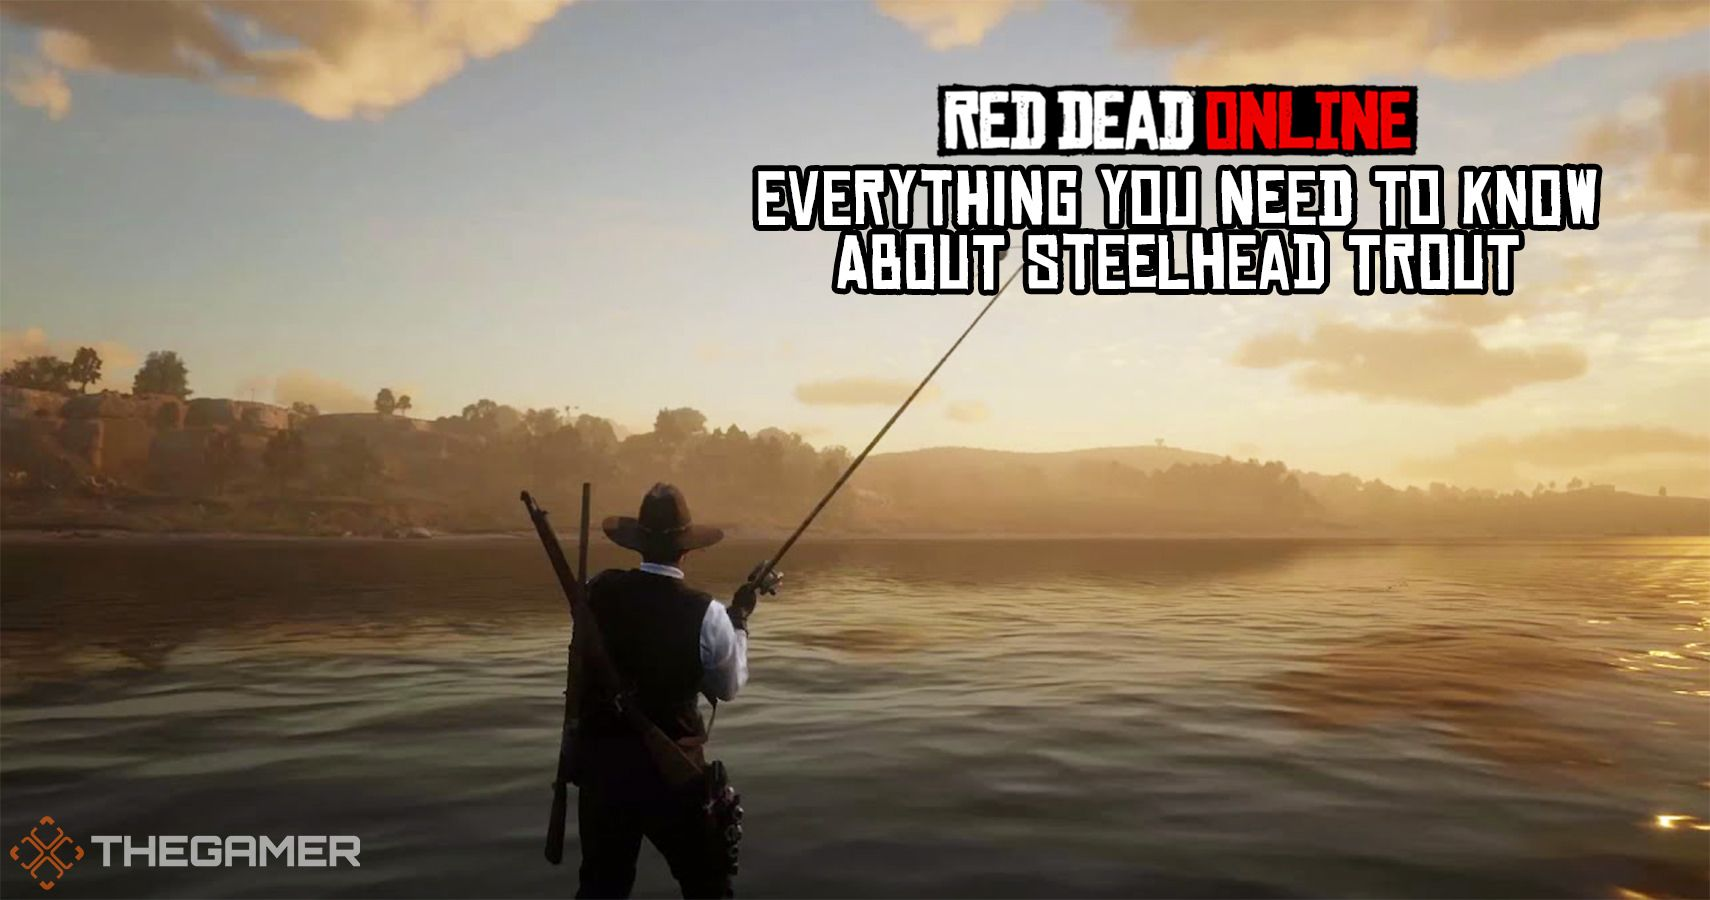 Red Dead Online: Everything You Need To Know About Steelhead Trout